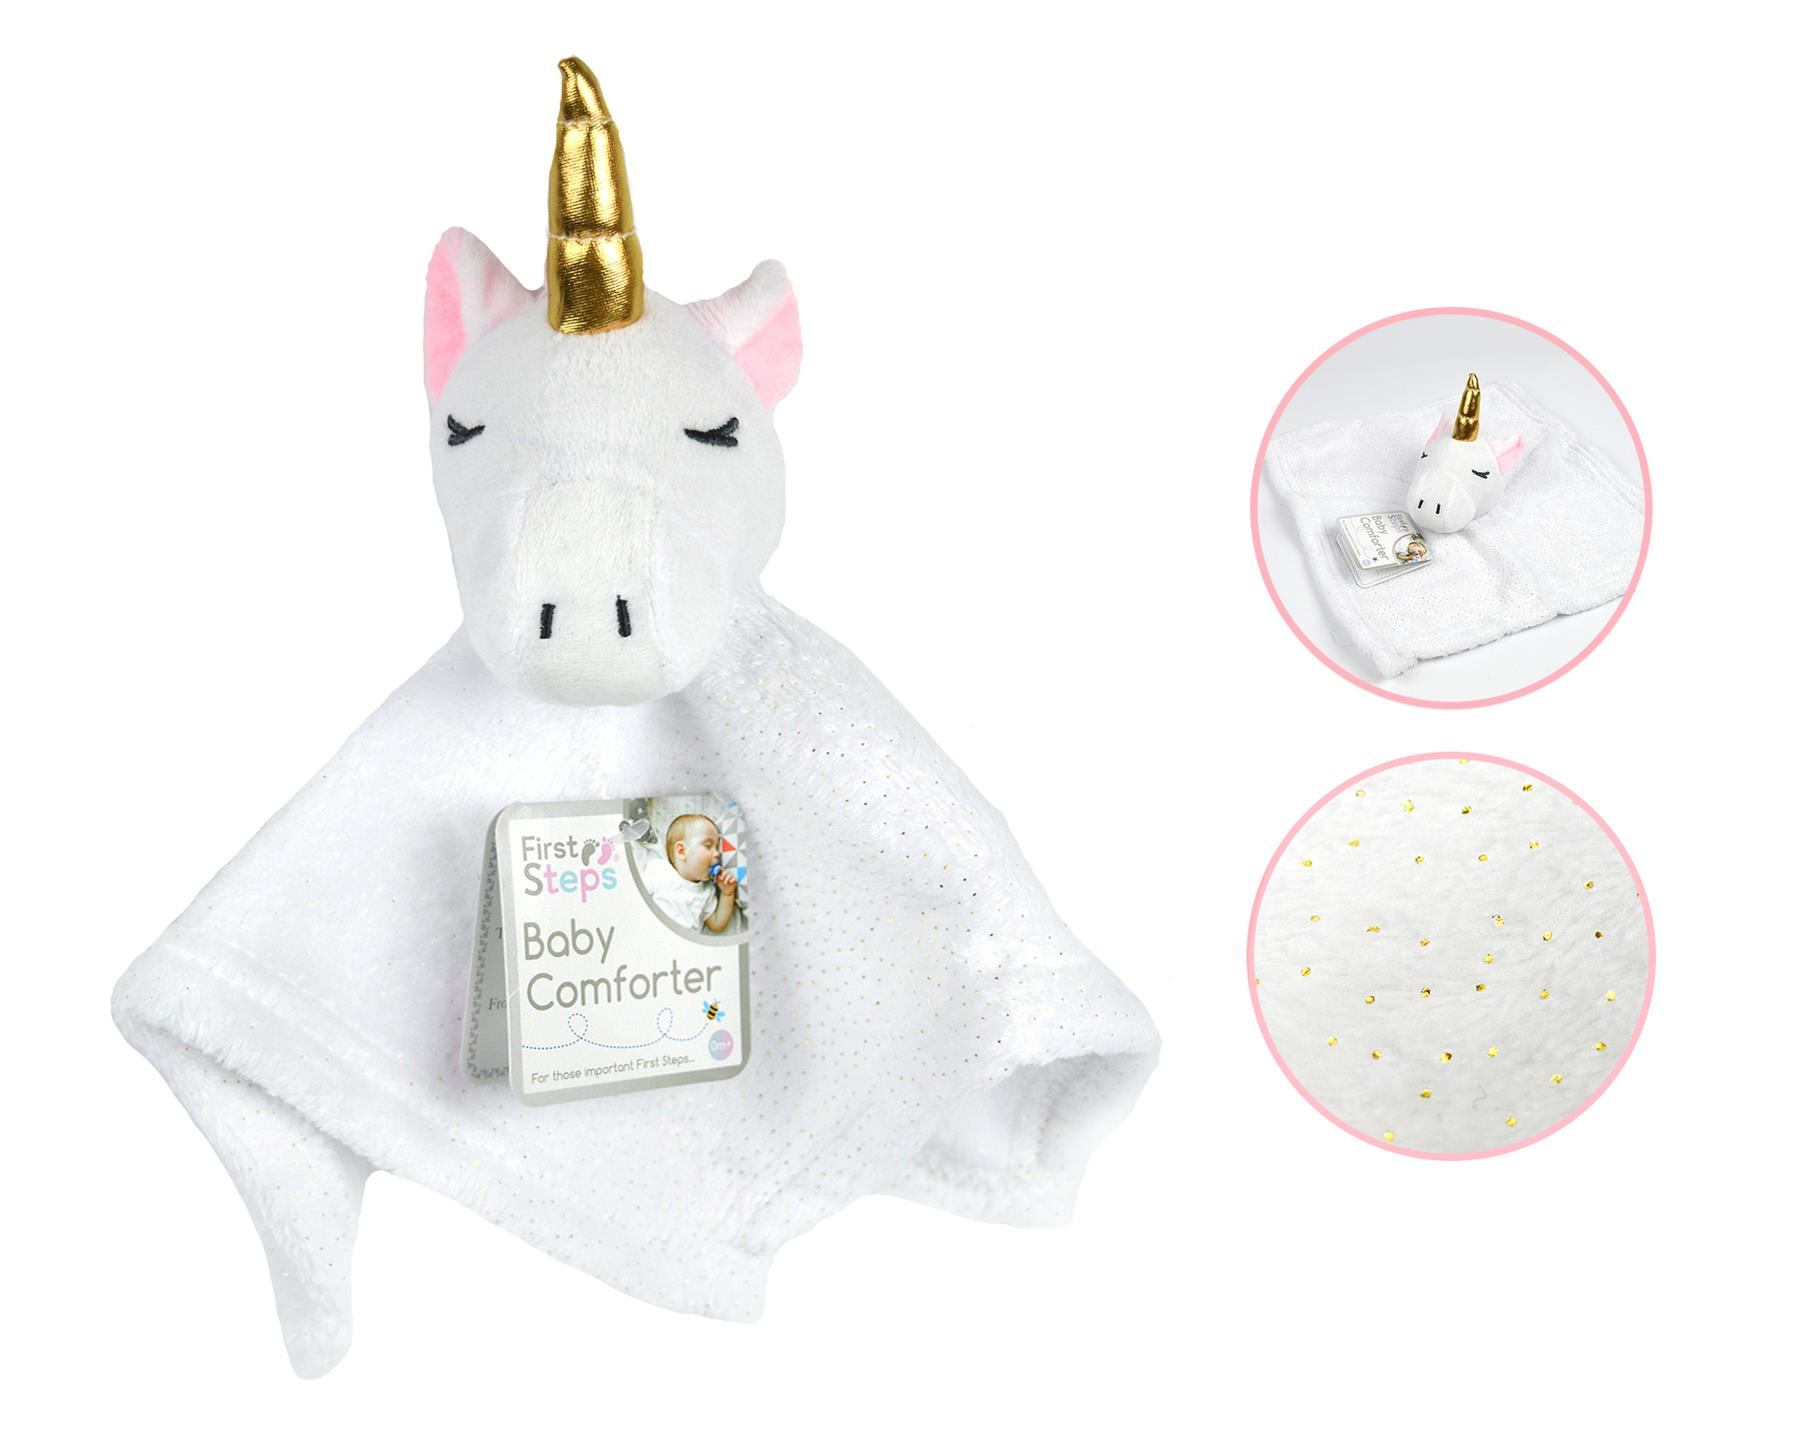 Personalised Babytown Soft UNICORN  Comforter Taggy taggie tag Blanket Gift